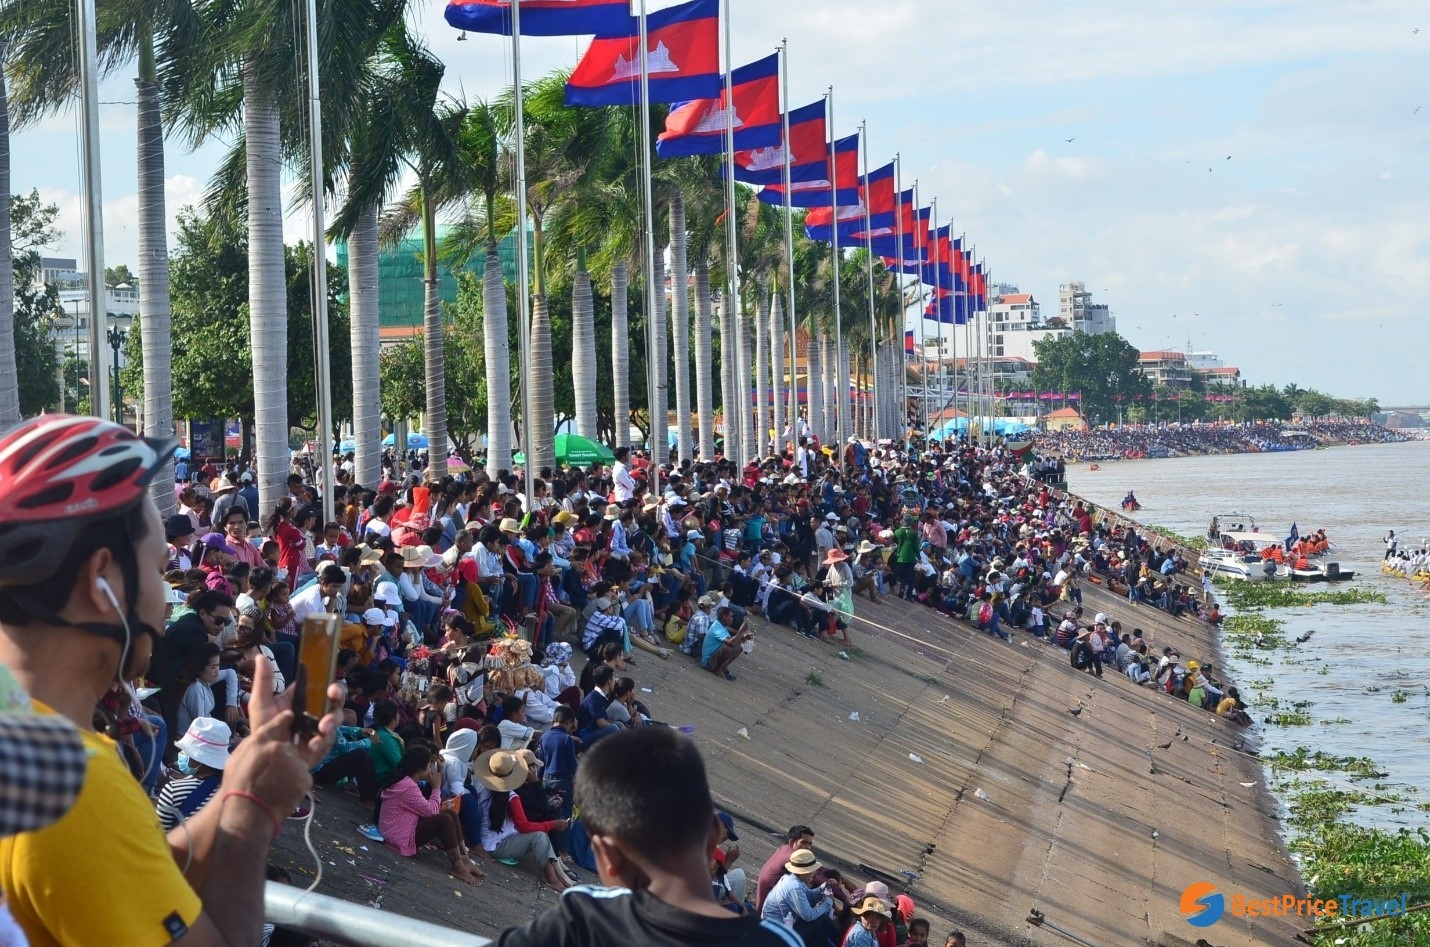 Spectators on the riverbank are cheering for their teams in rowing festival